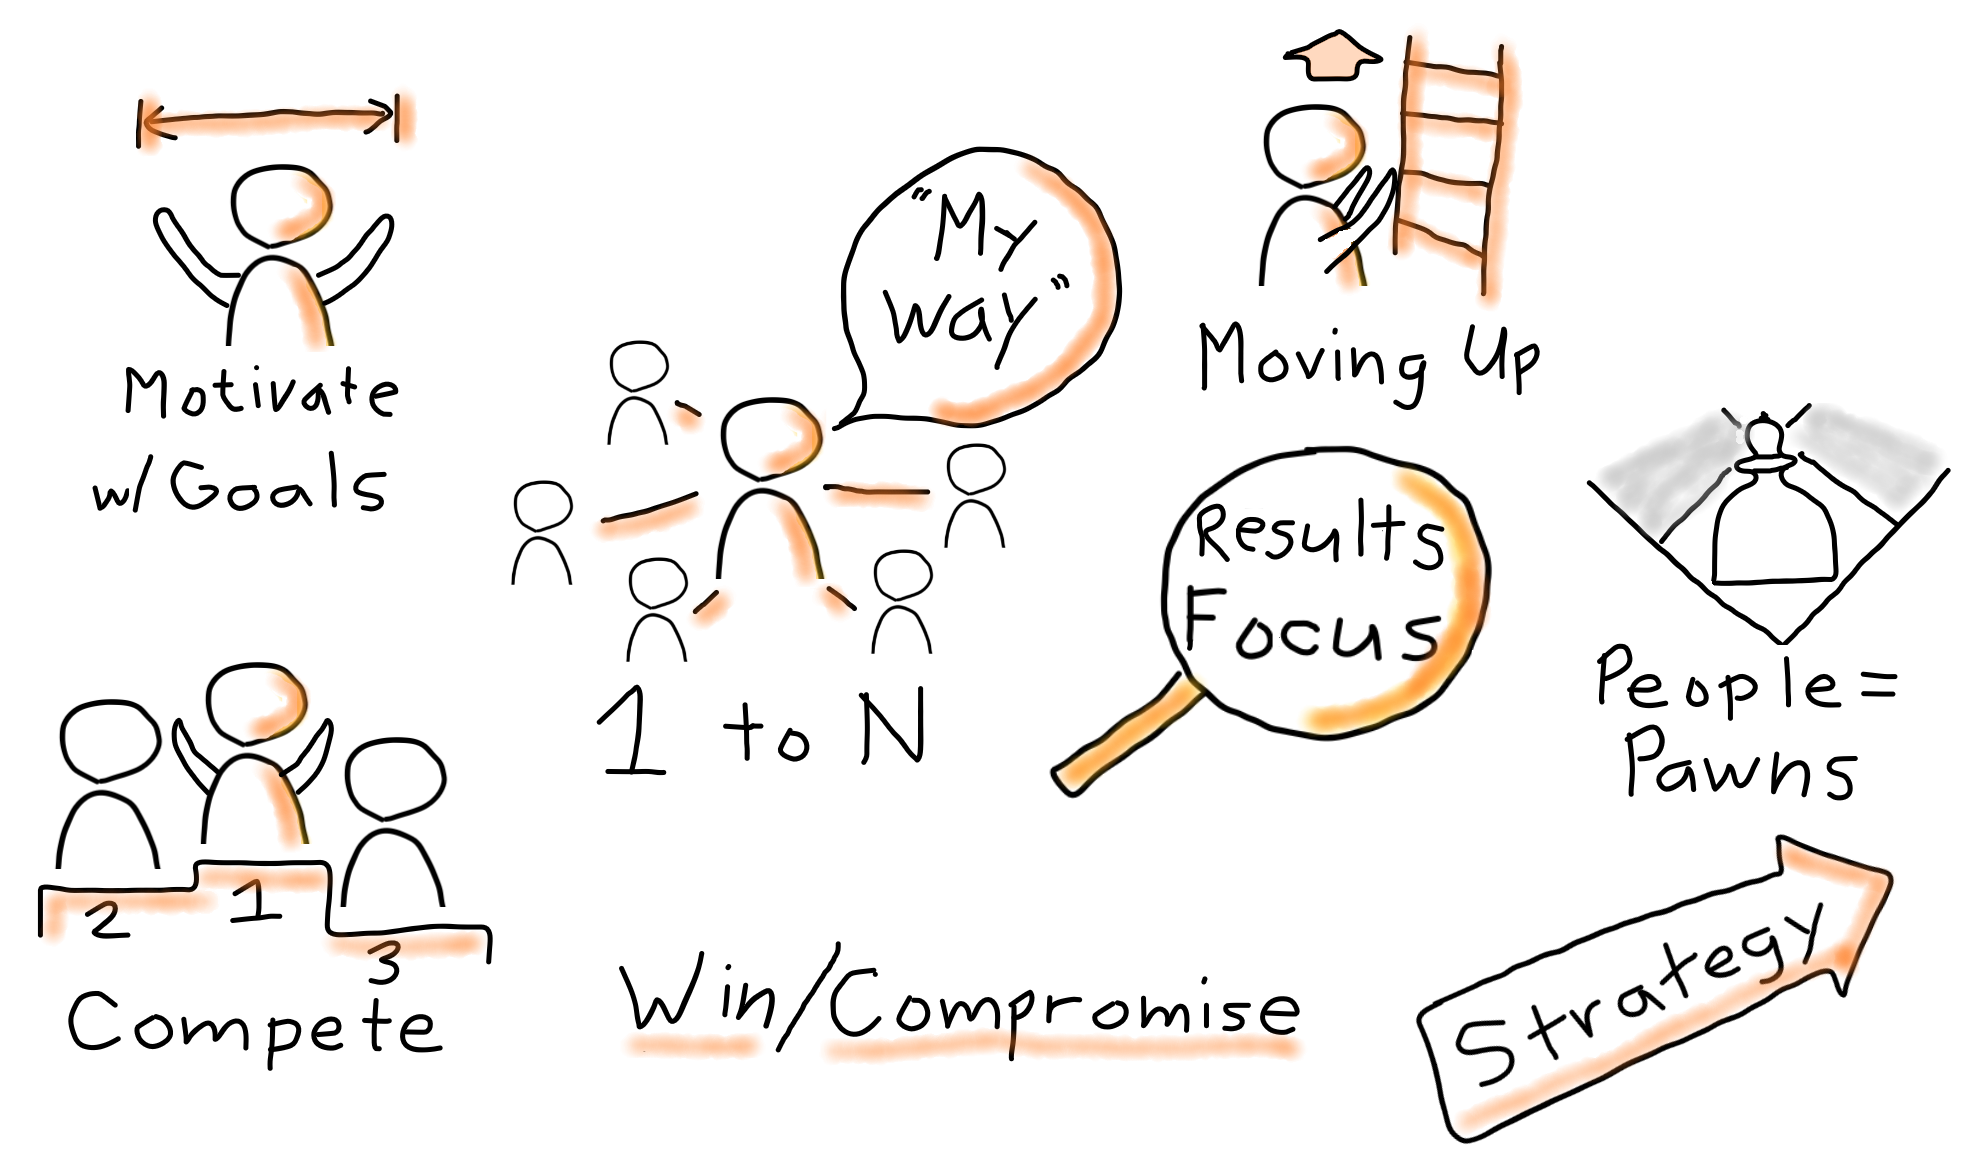 Adapted from Pete Behrens & Agile Leadership Journey